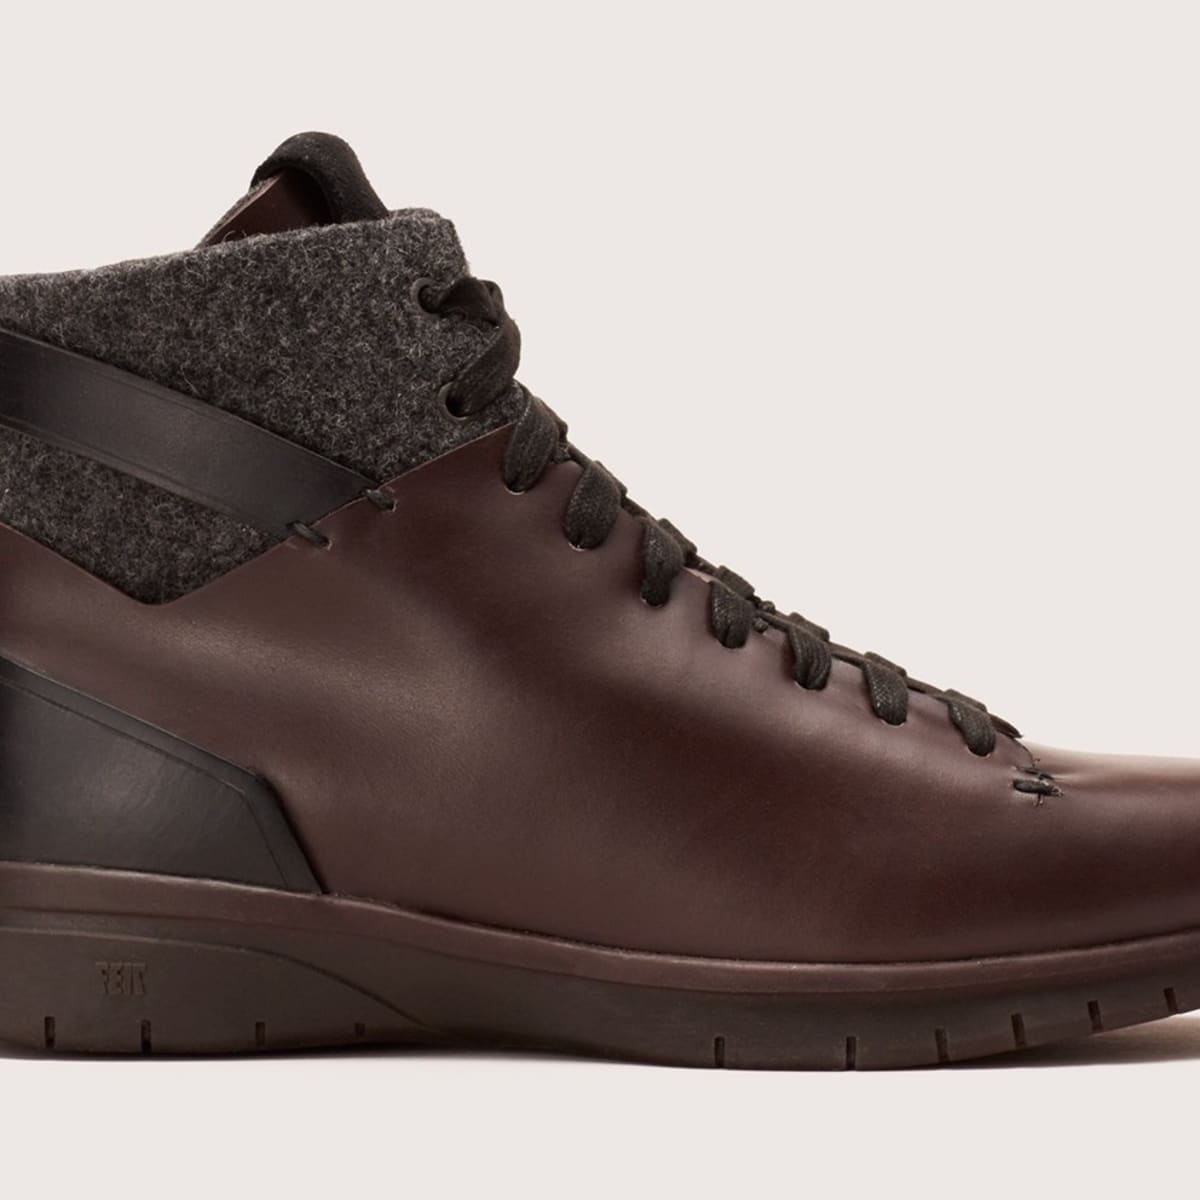 Feit is pulling from their archives for